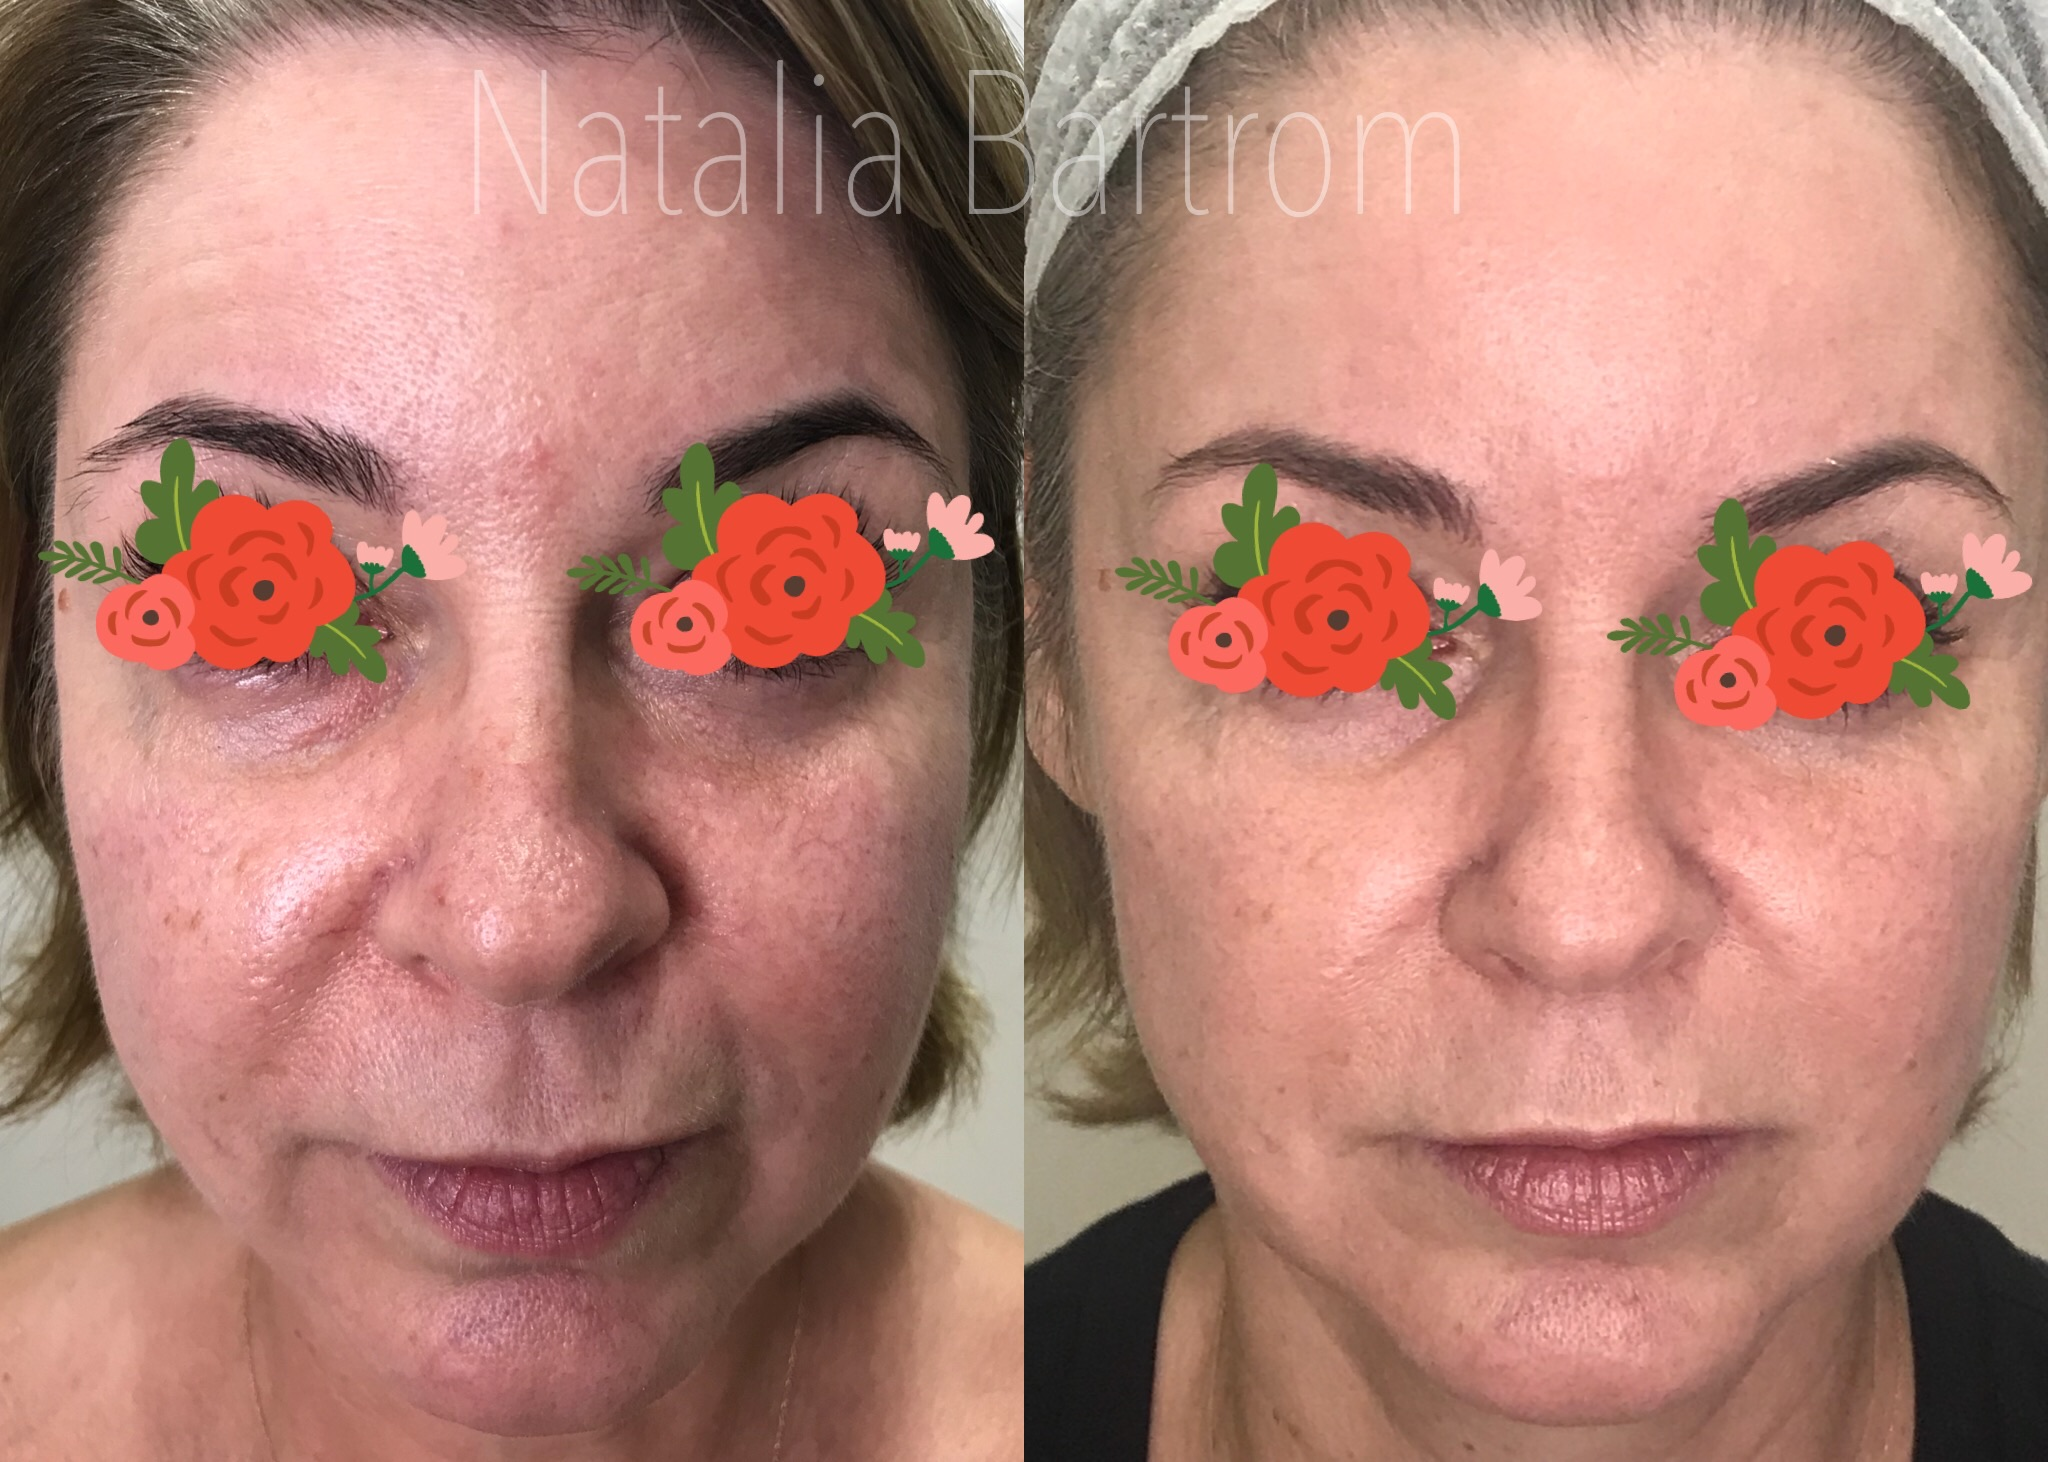 before and after - 1 treatment (50 years old client)